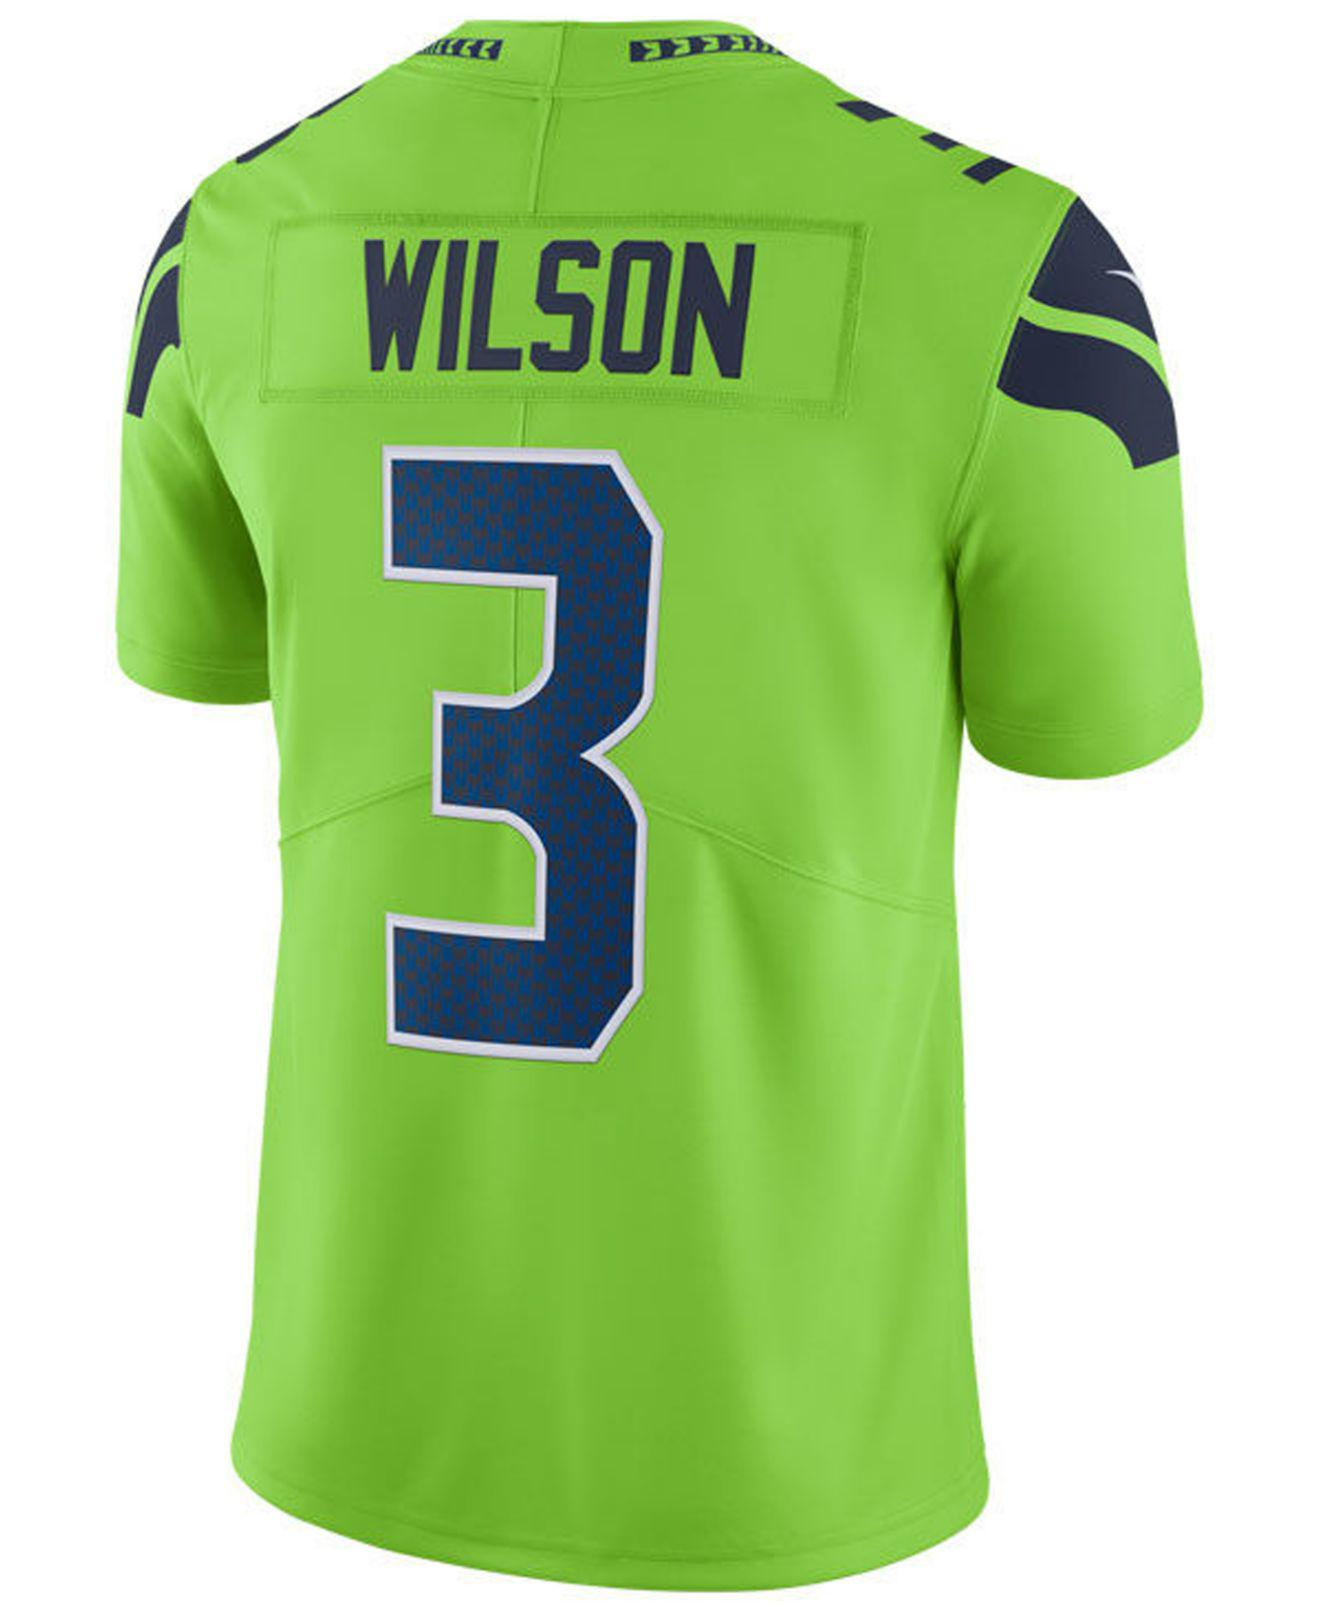 Lyst - Nike Nfl Seattle Seahawks Color Rush Limited (russell Wilson ... 13c43030d